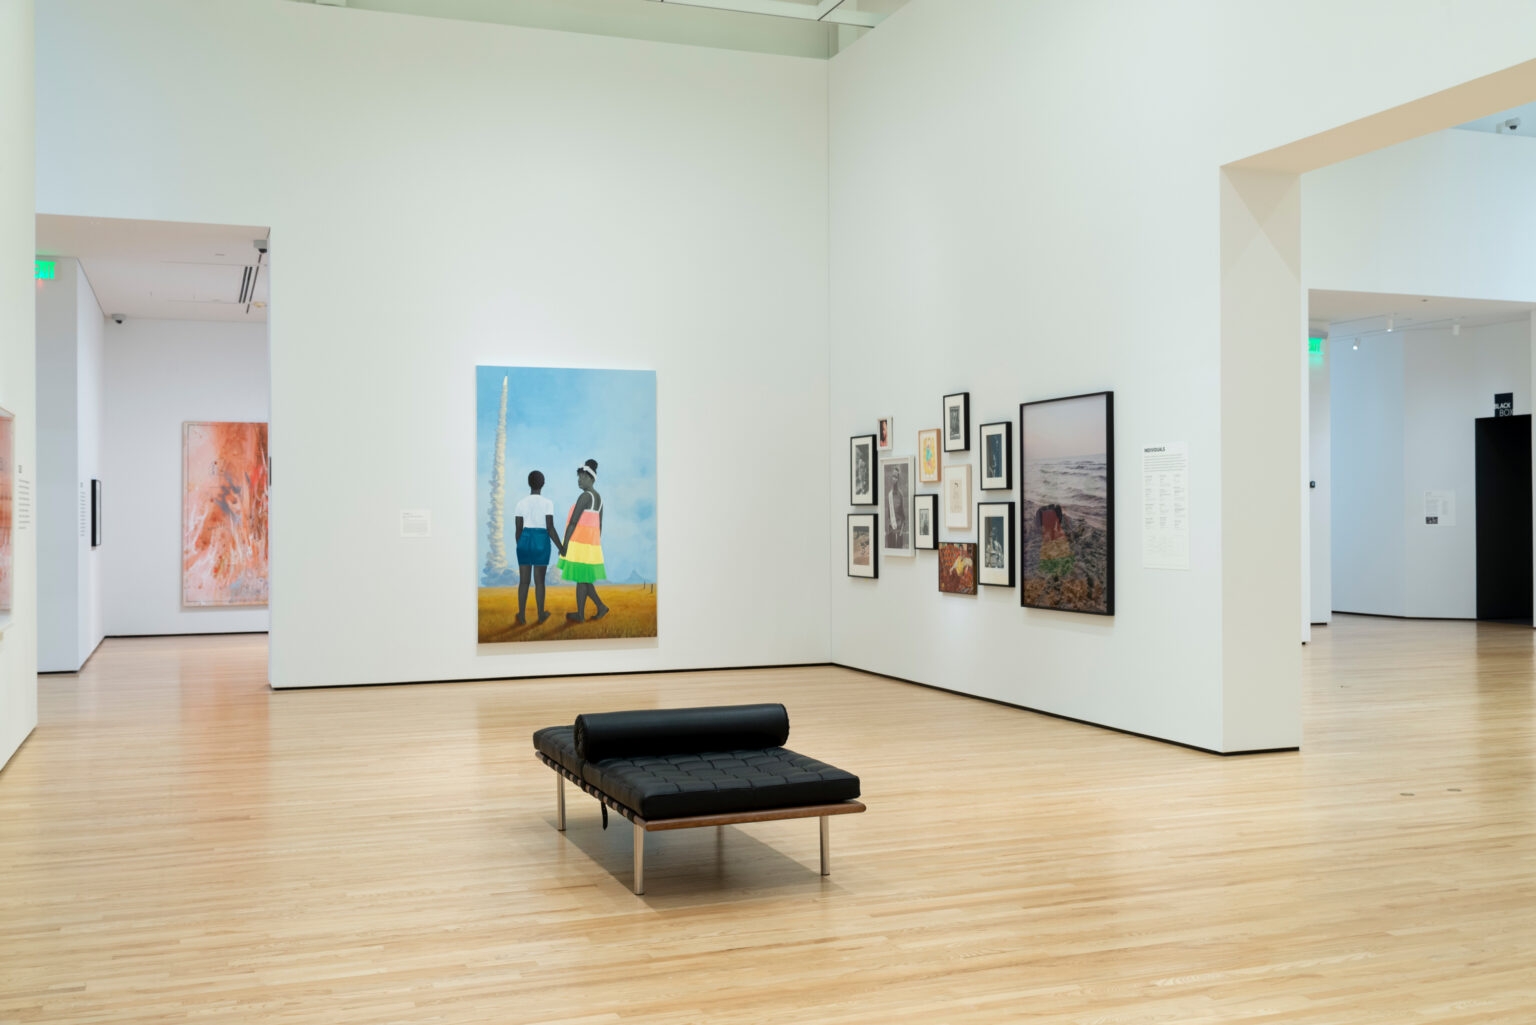 Installation view, Every Day: Selections from the Collection. Photo by Mitro Hood